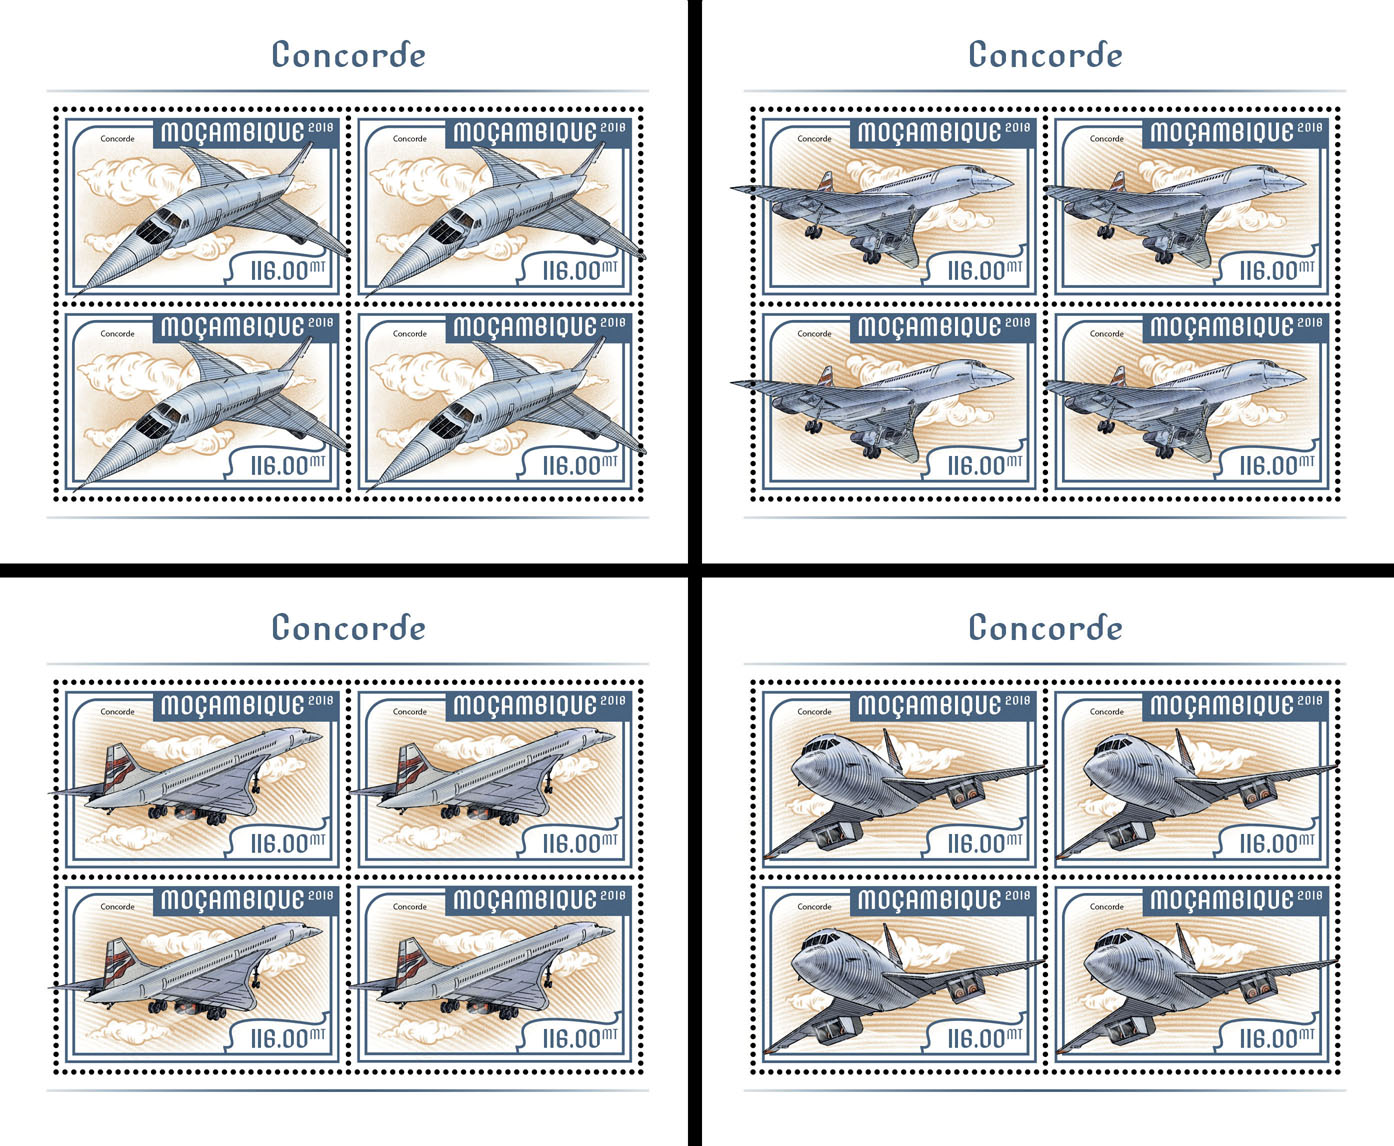 Concorde (4 sets of 4 stamps) - Issue of Mozambique postage Stamps